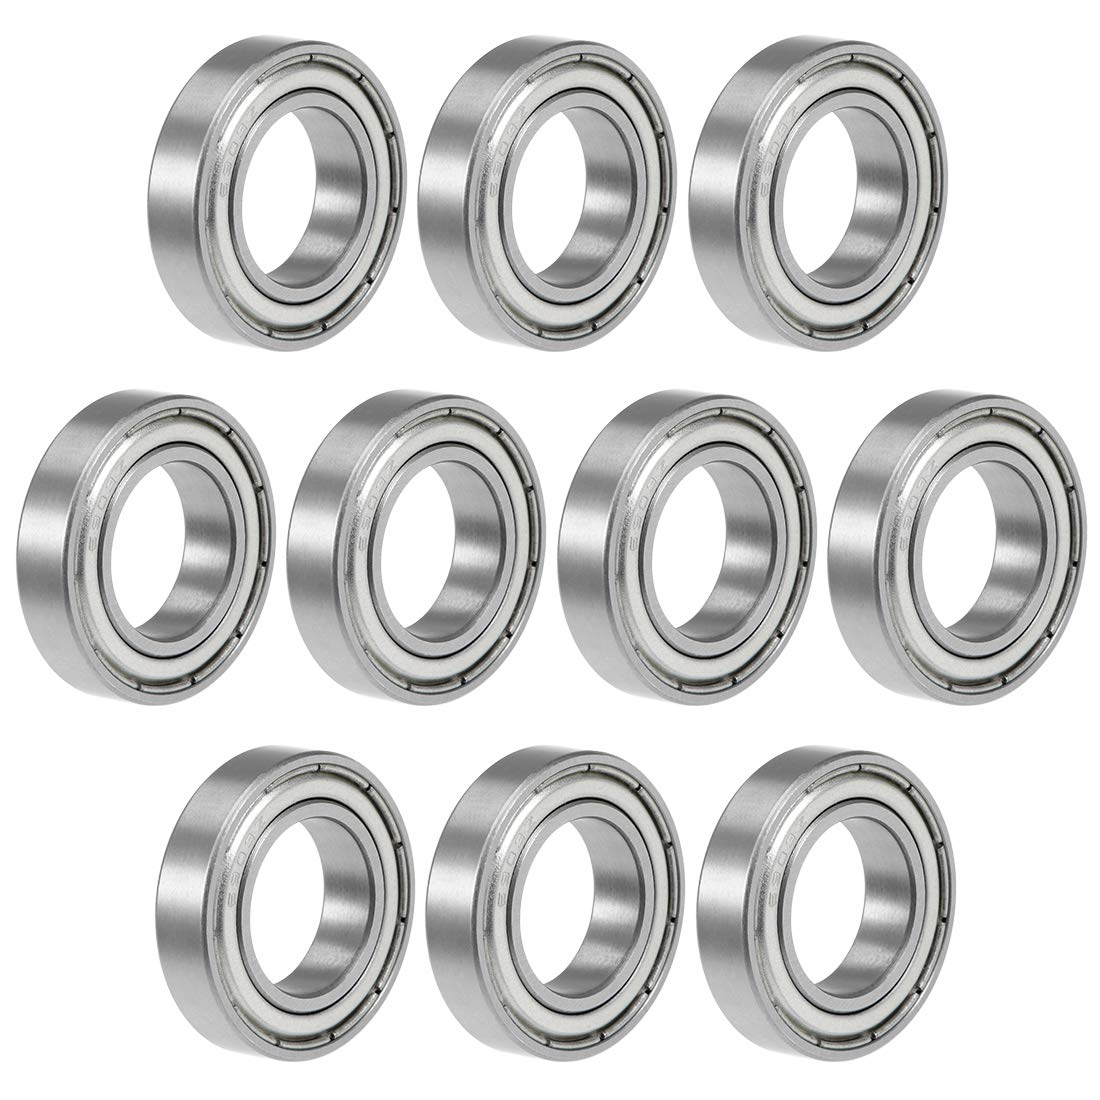 uxcell 6903ZZ Deep Groove Ball Bearing 17x30x7mm Double Shielded Chrome Steel Bearings 10-Pack